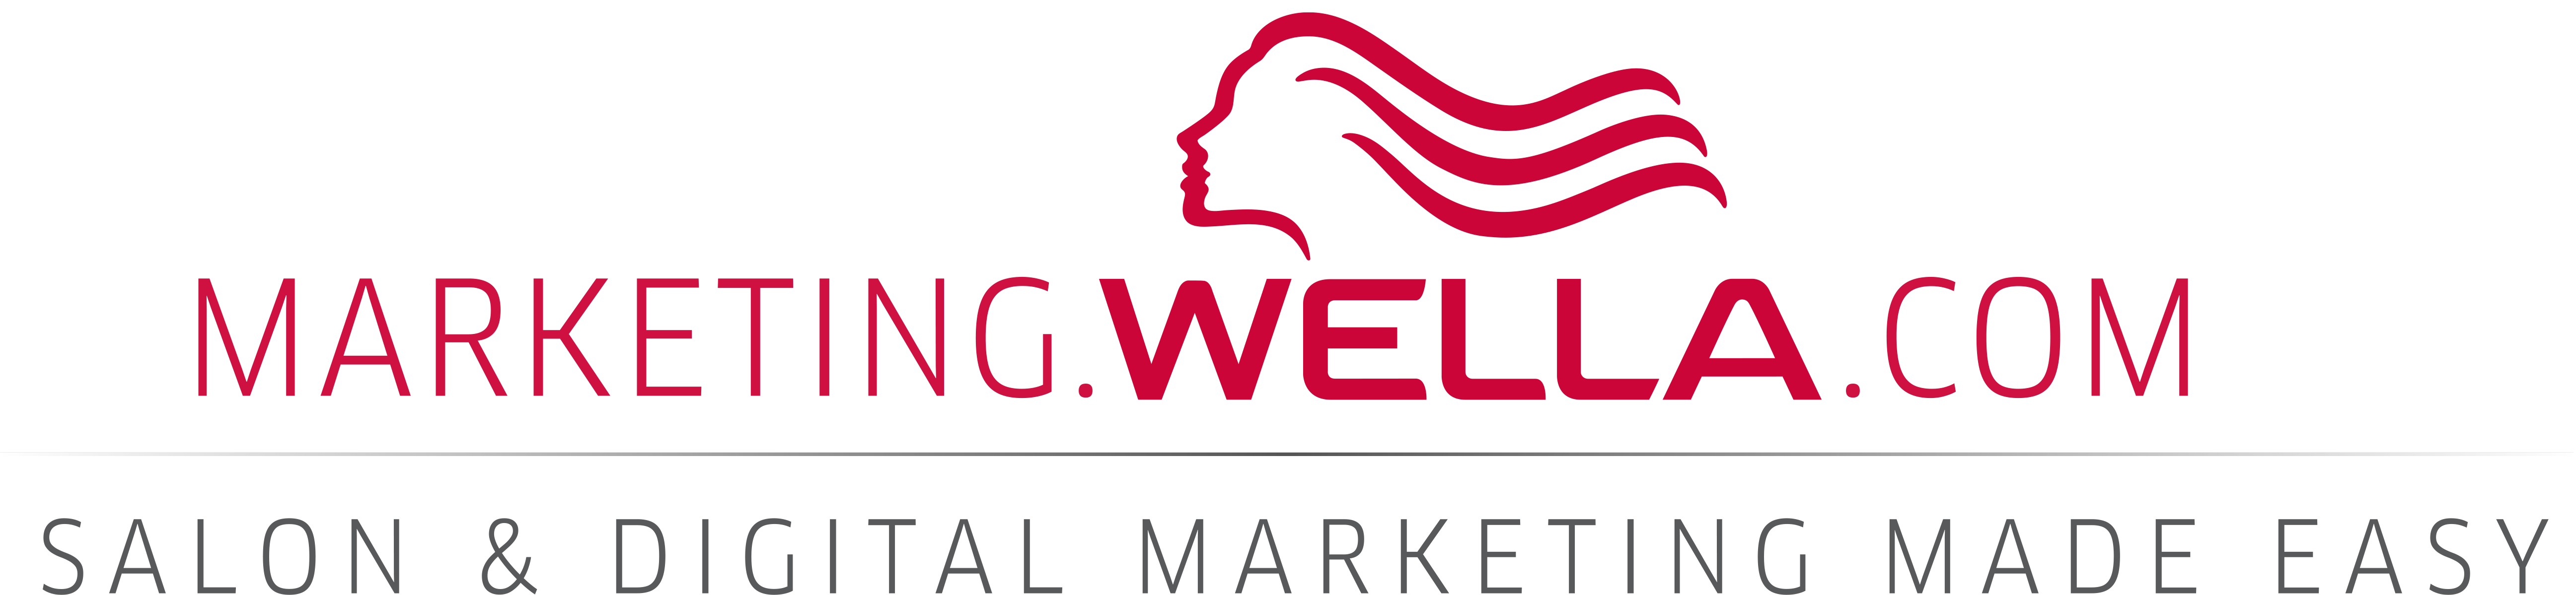 Wella Salon Marketing